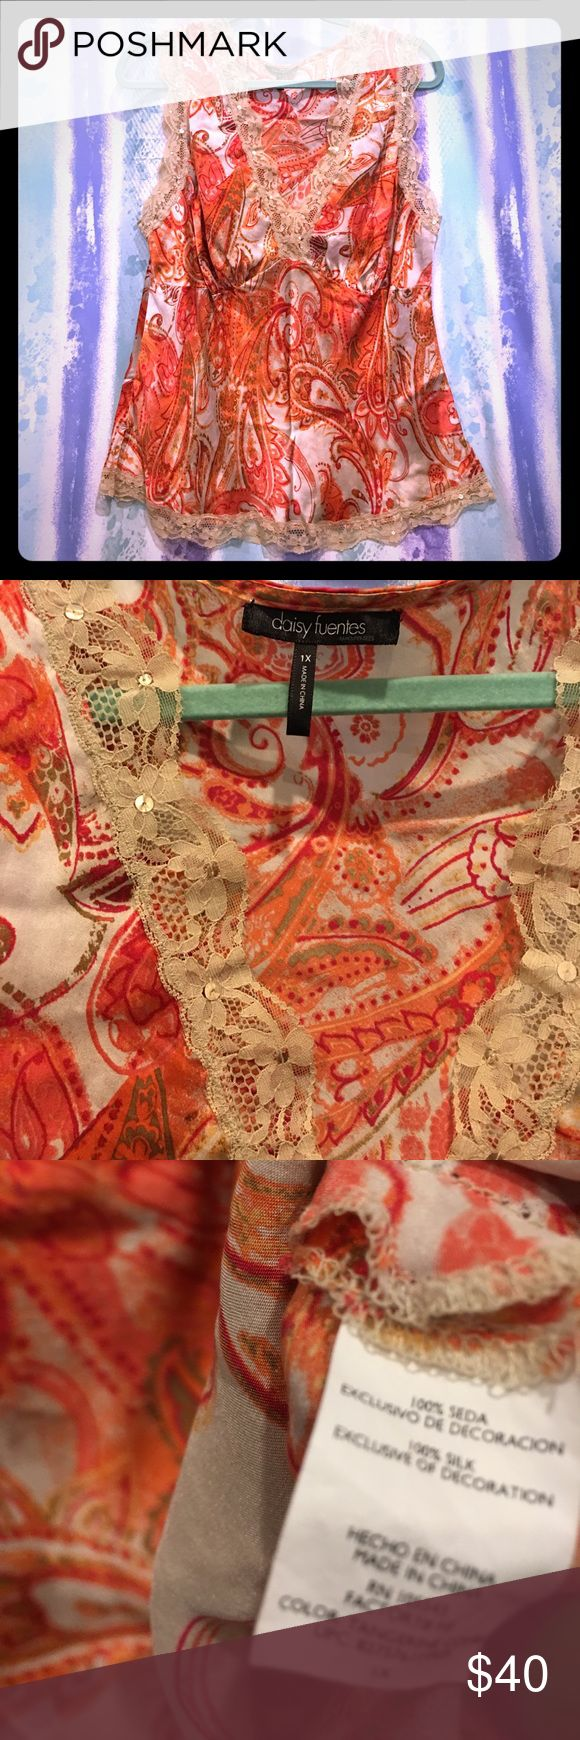 """Daisy Fuentes Plus size 1x  100% Silk Dress Tank Daisy Fuentes Plus size 1x  100% Silk Dress Tank orange cream multi colored 25"""" length Daisy Fuentes Tops Tank Tops"""